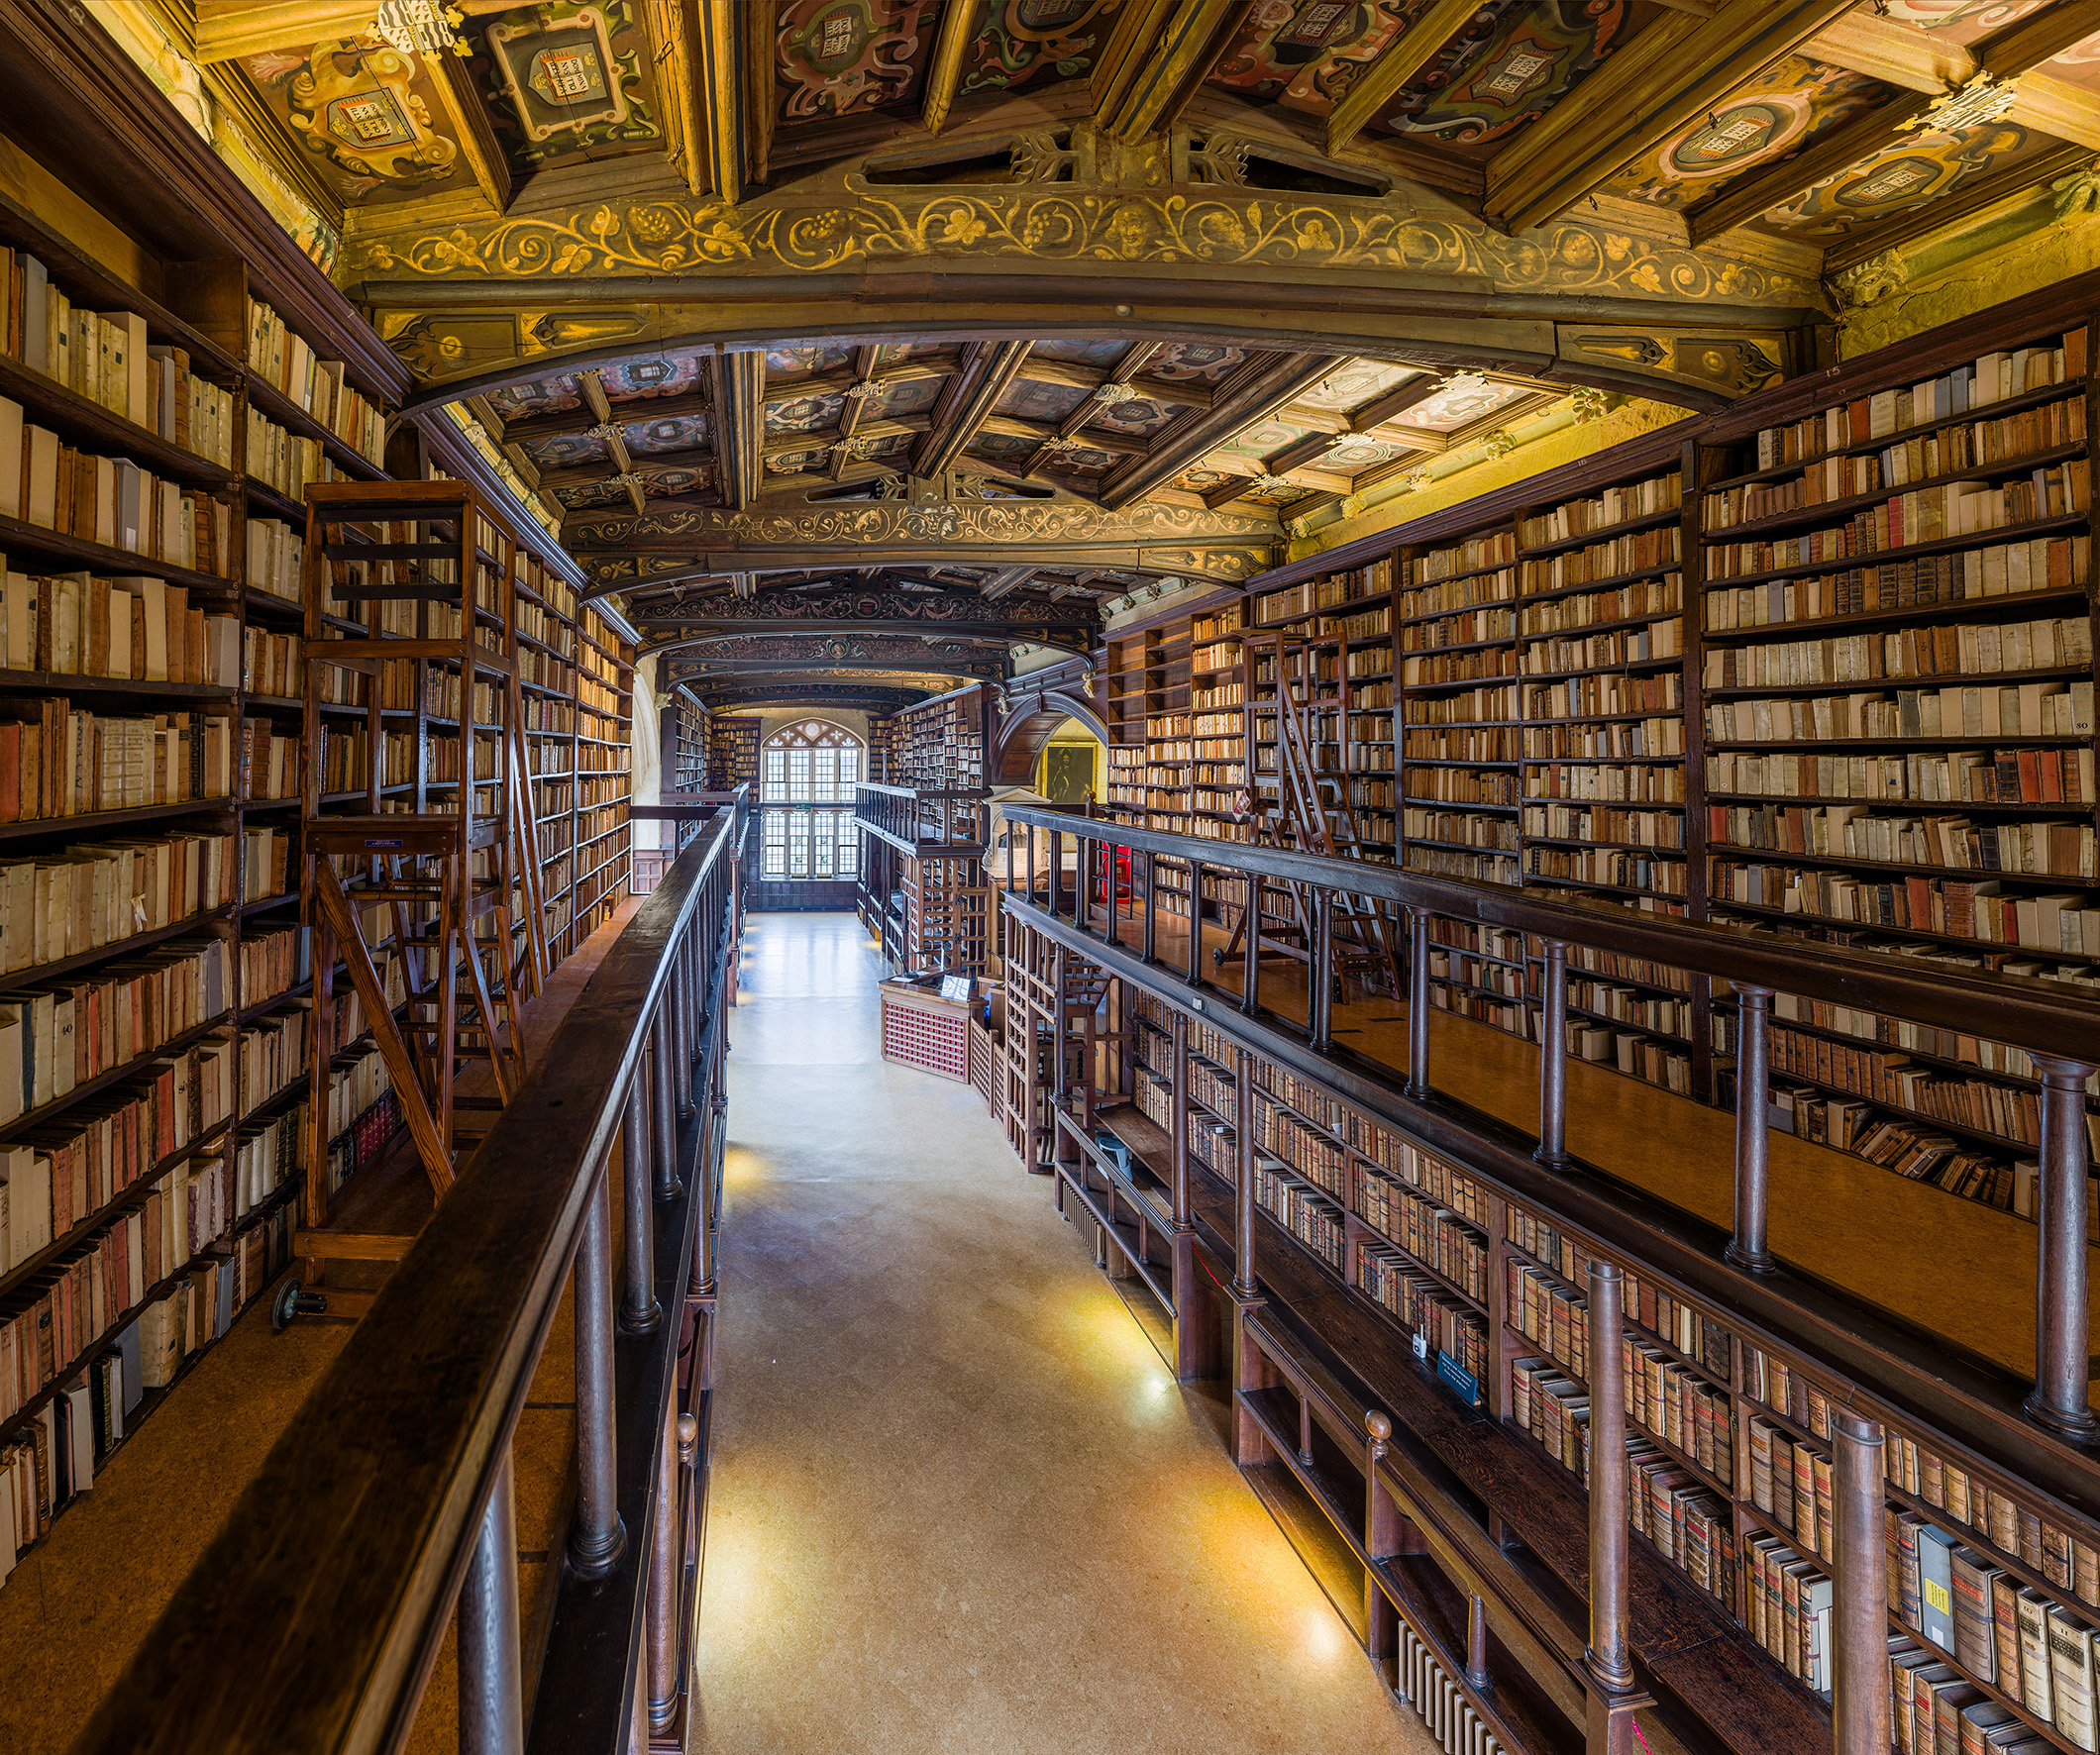 Duke Humfrey's Library Interior 5, Bodleian Library, Oxford, UK - Diliff.jpg